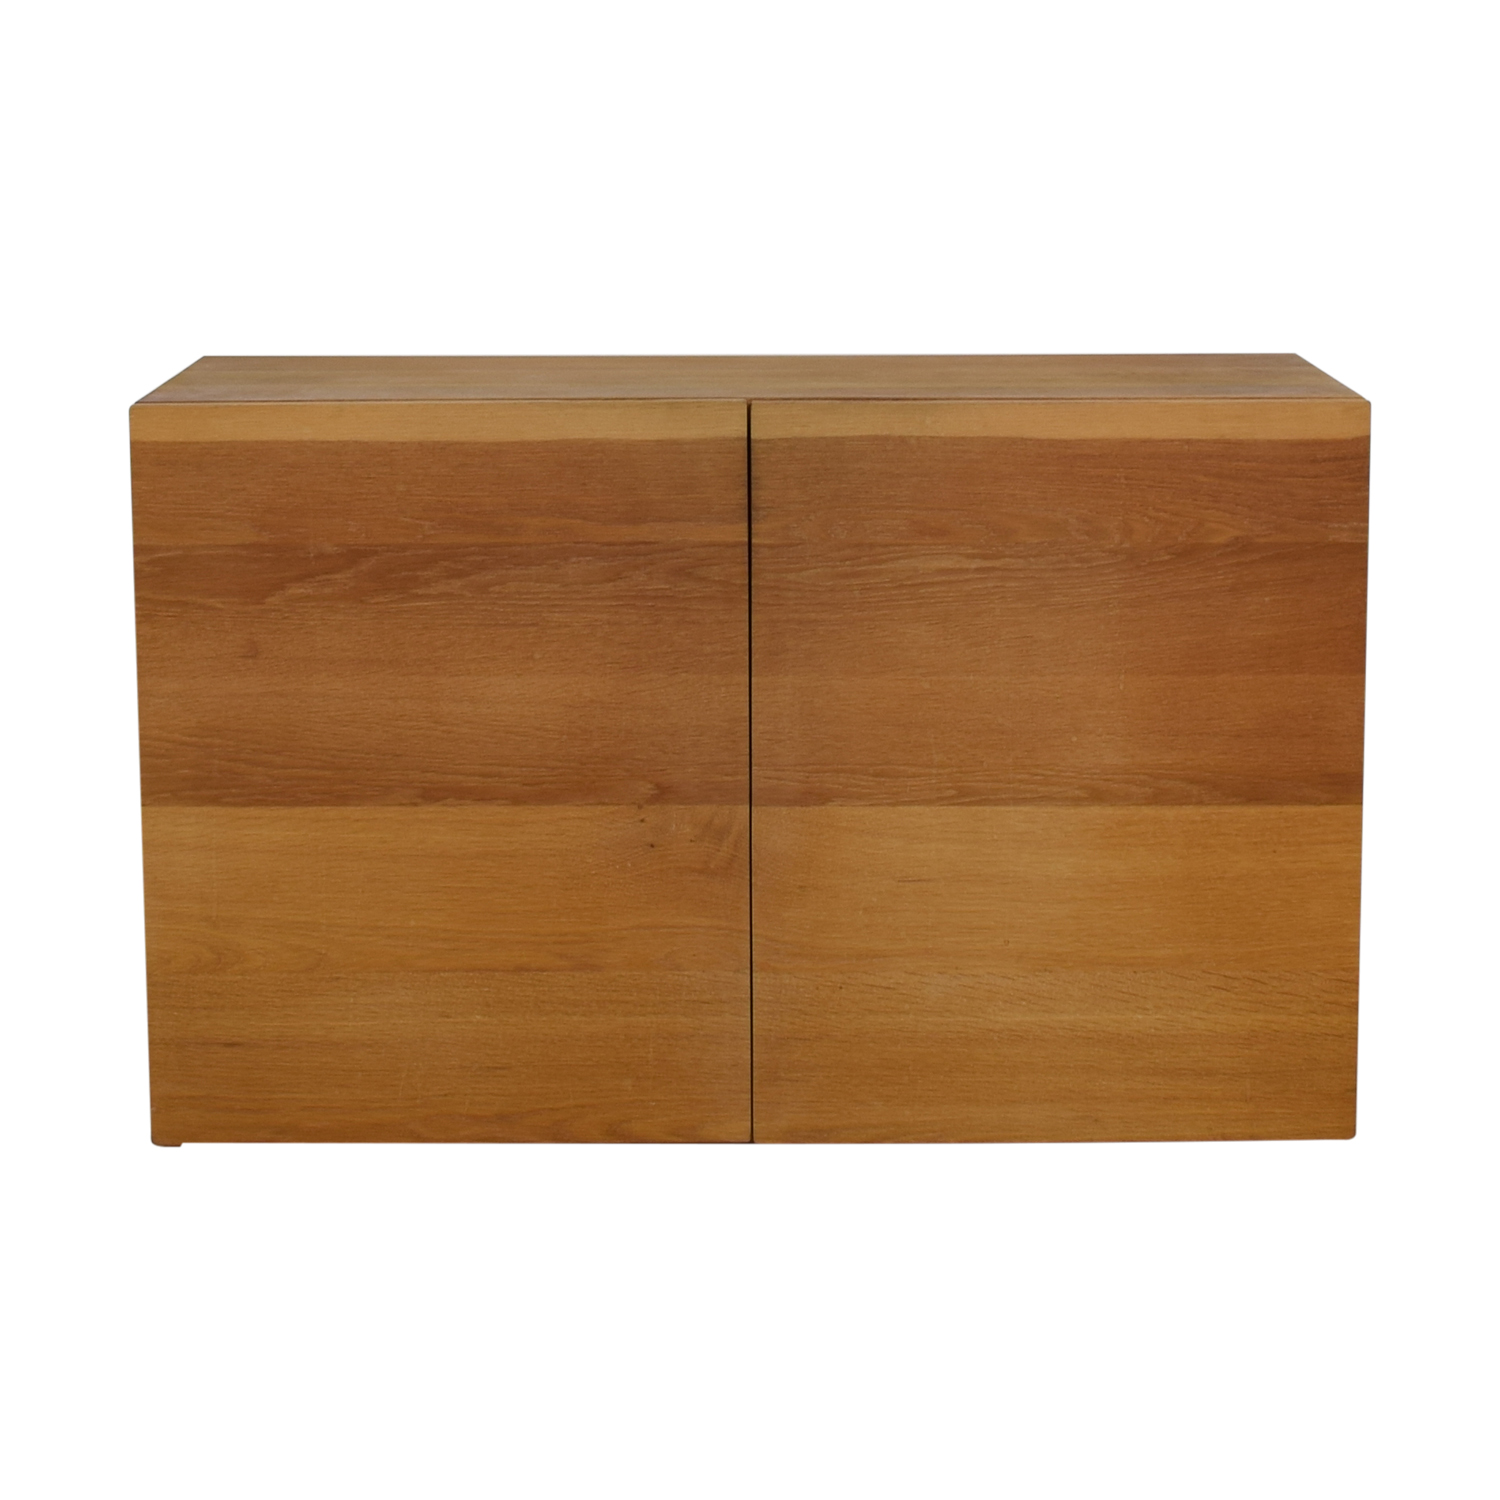 ABC Carpet & Home ABC Carpet & Home Oak Wood Sideboard nj